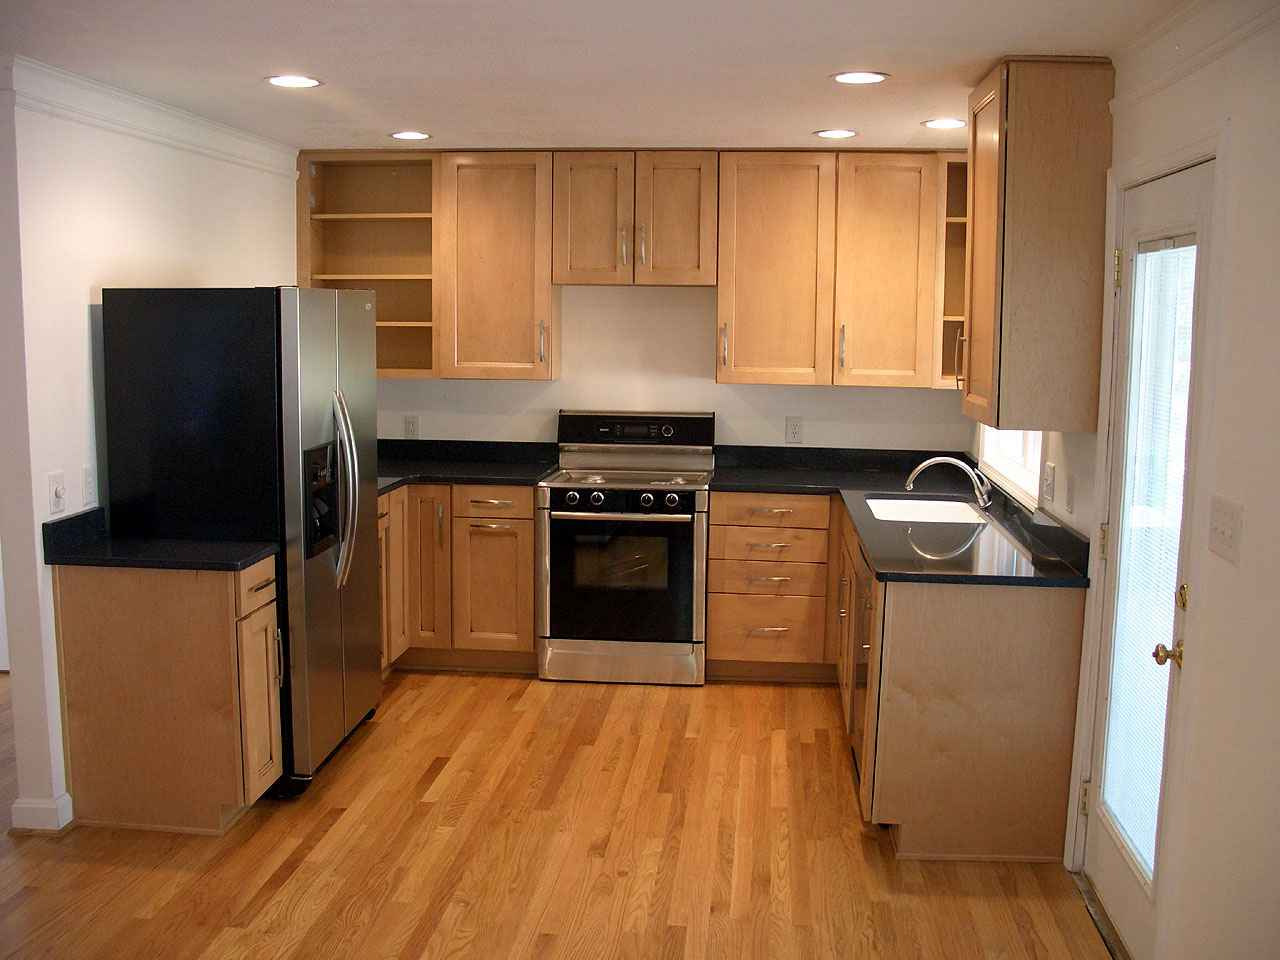 Cheap cabinets for kitchens shopping tips for Budget kitchen cabinets